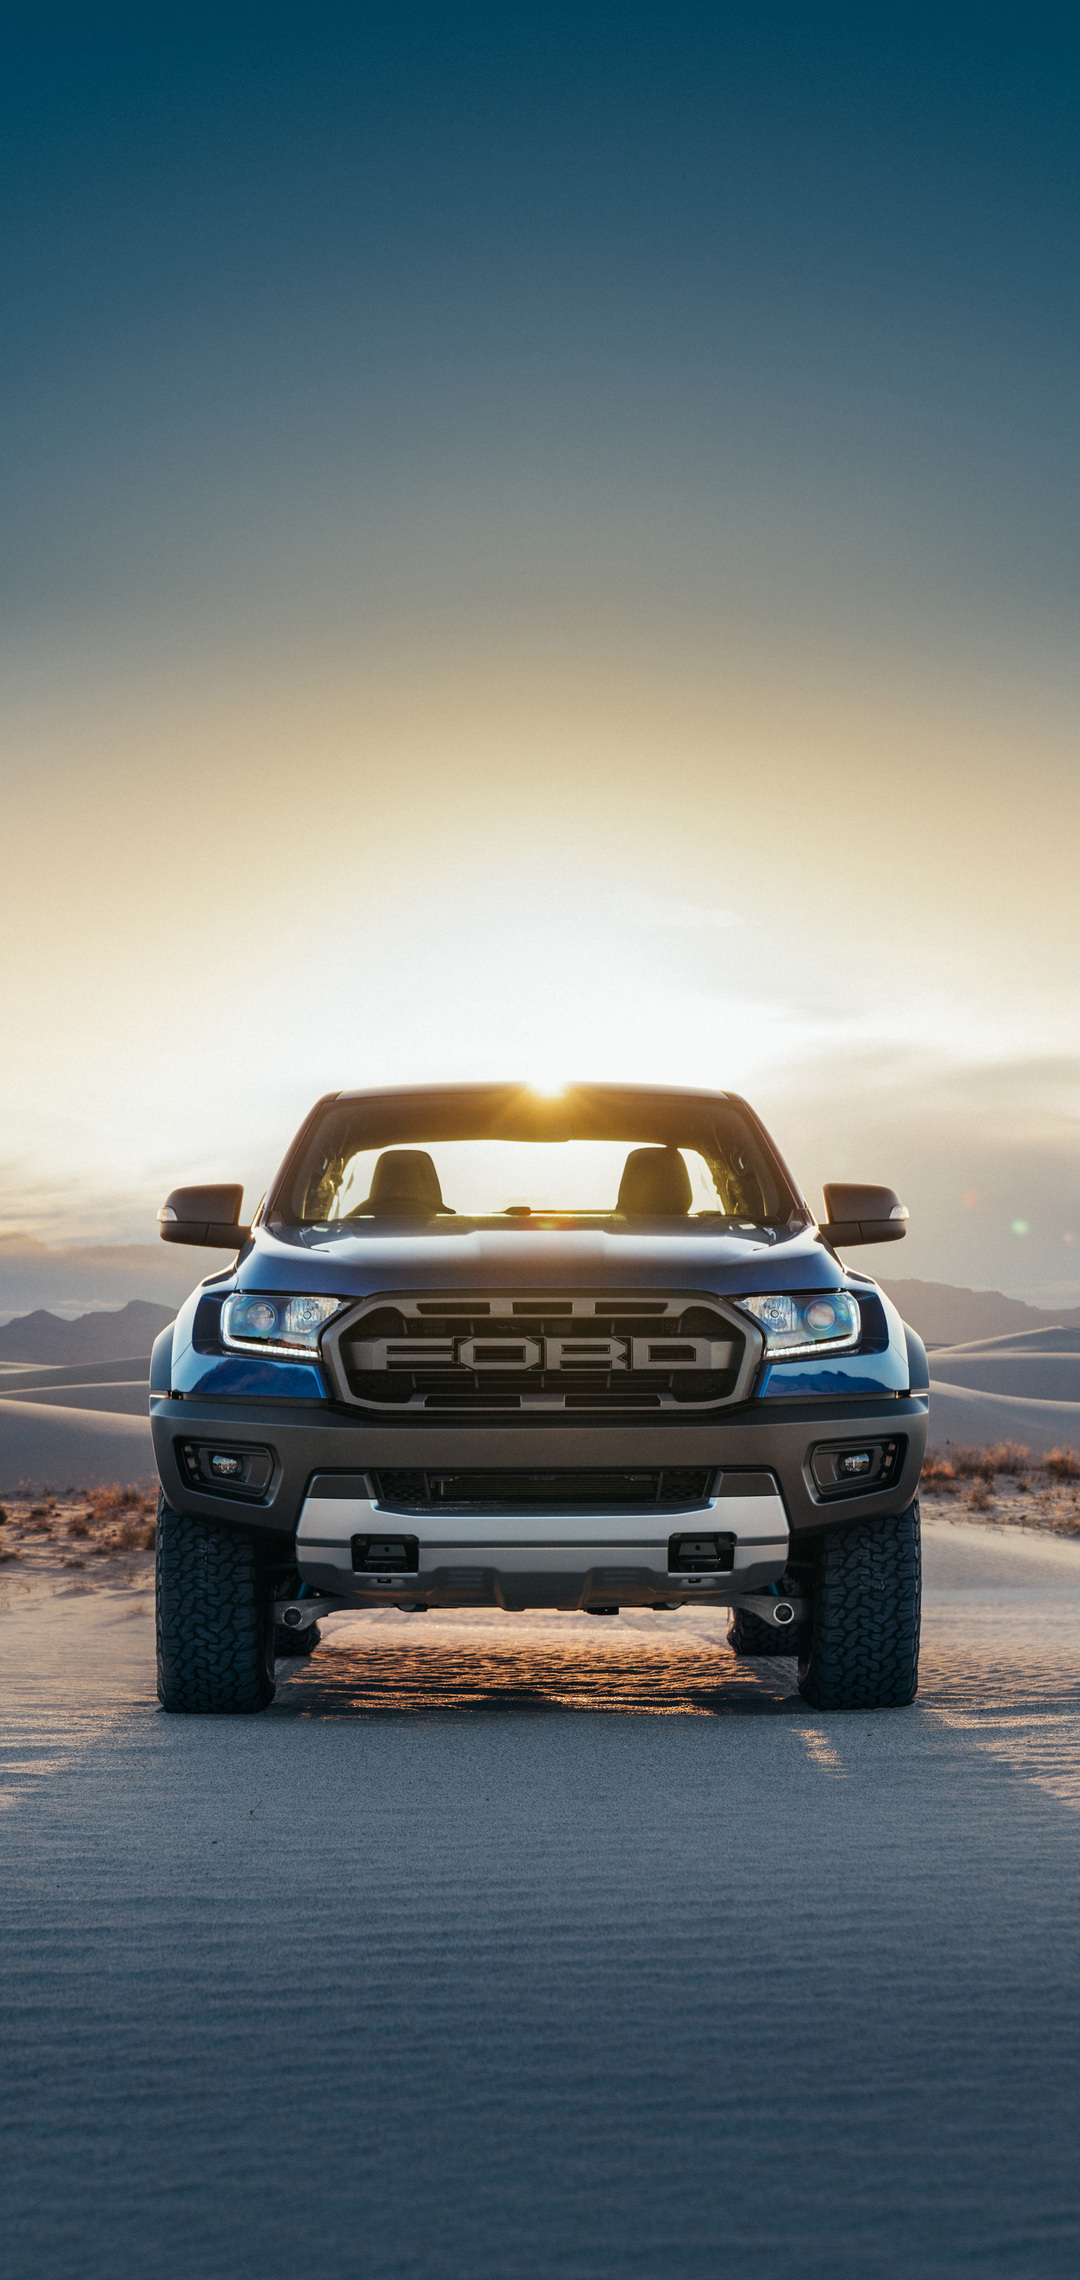 1080x2280 Ford Ranger Raptor One Plus 6,Huawei p20,Honor